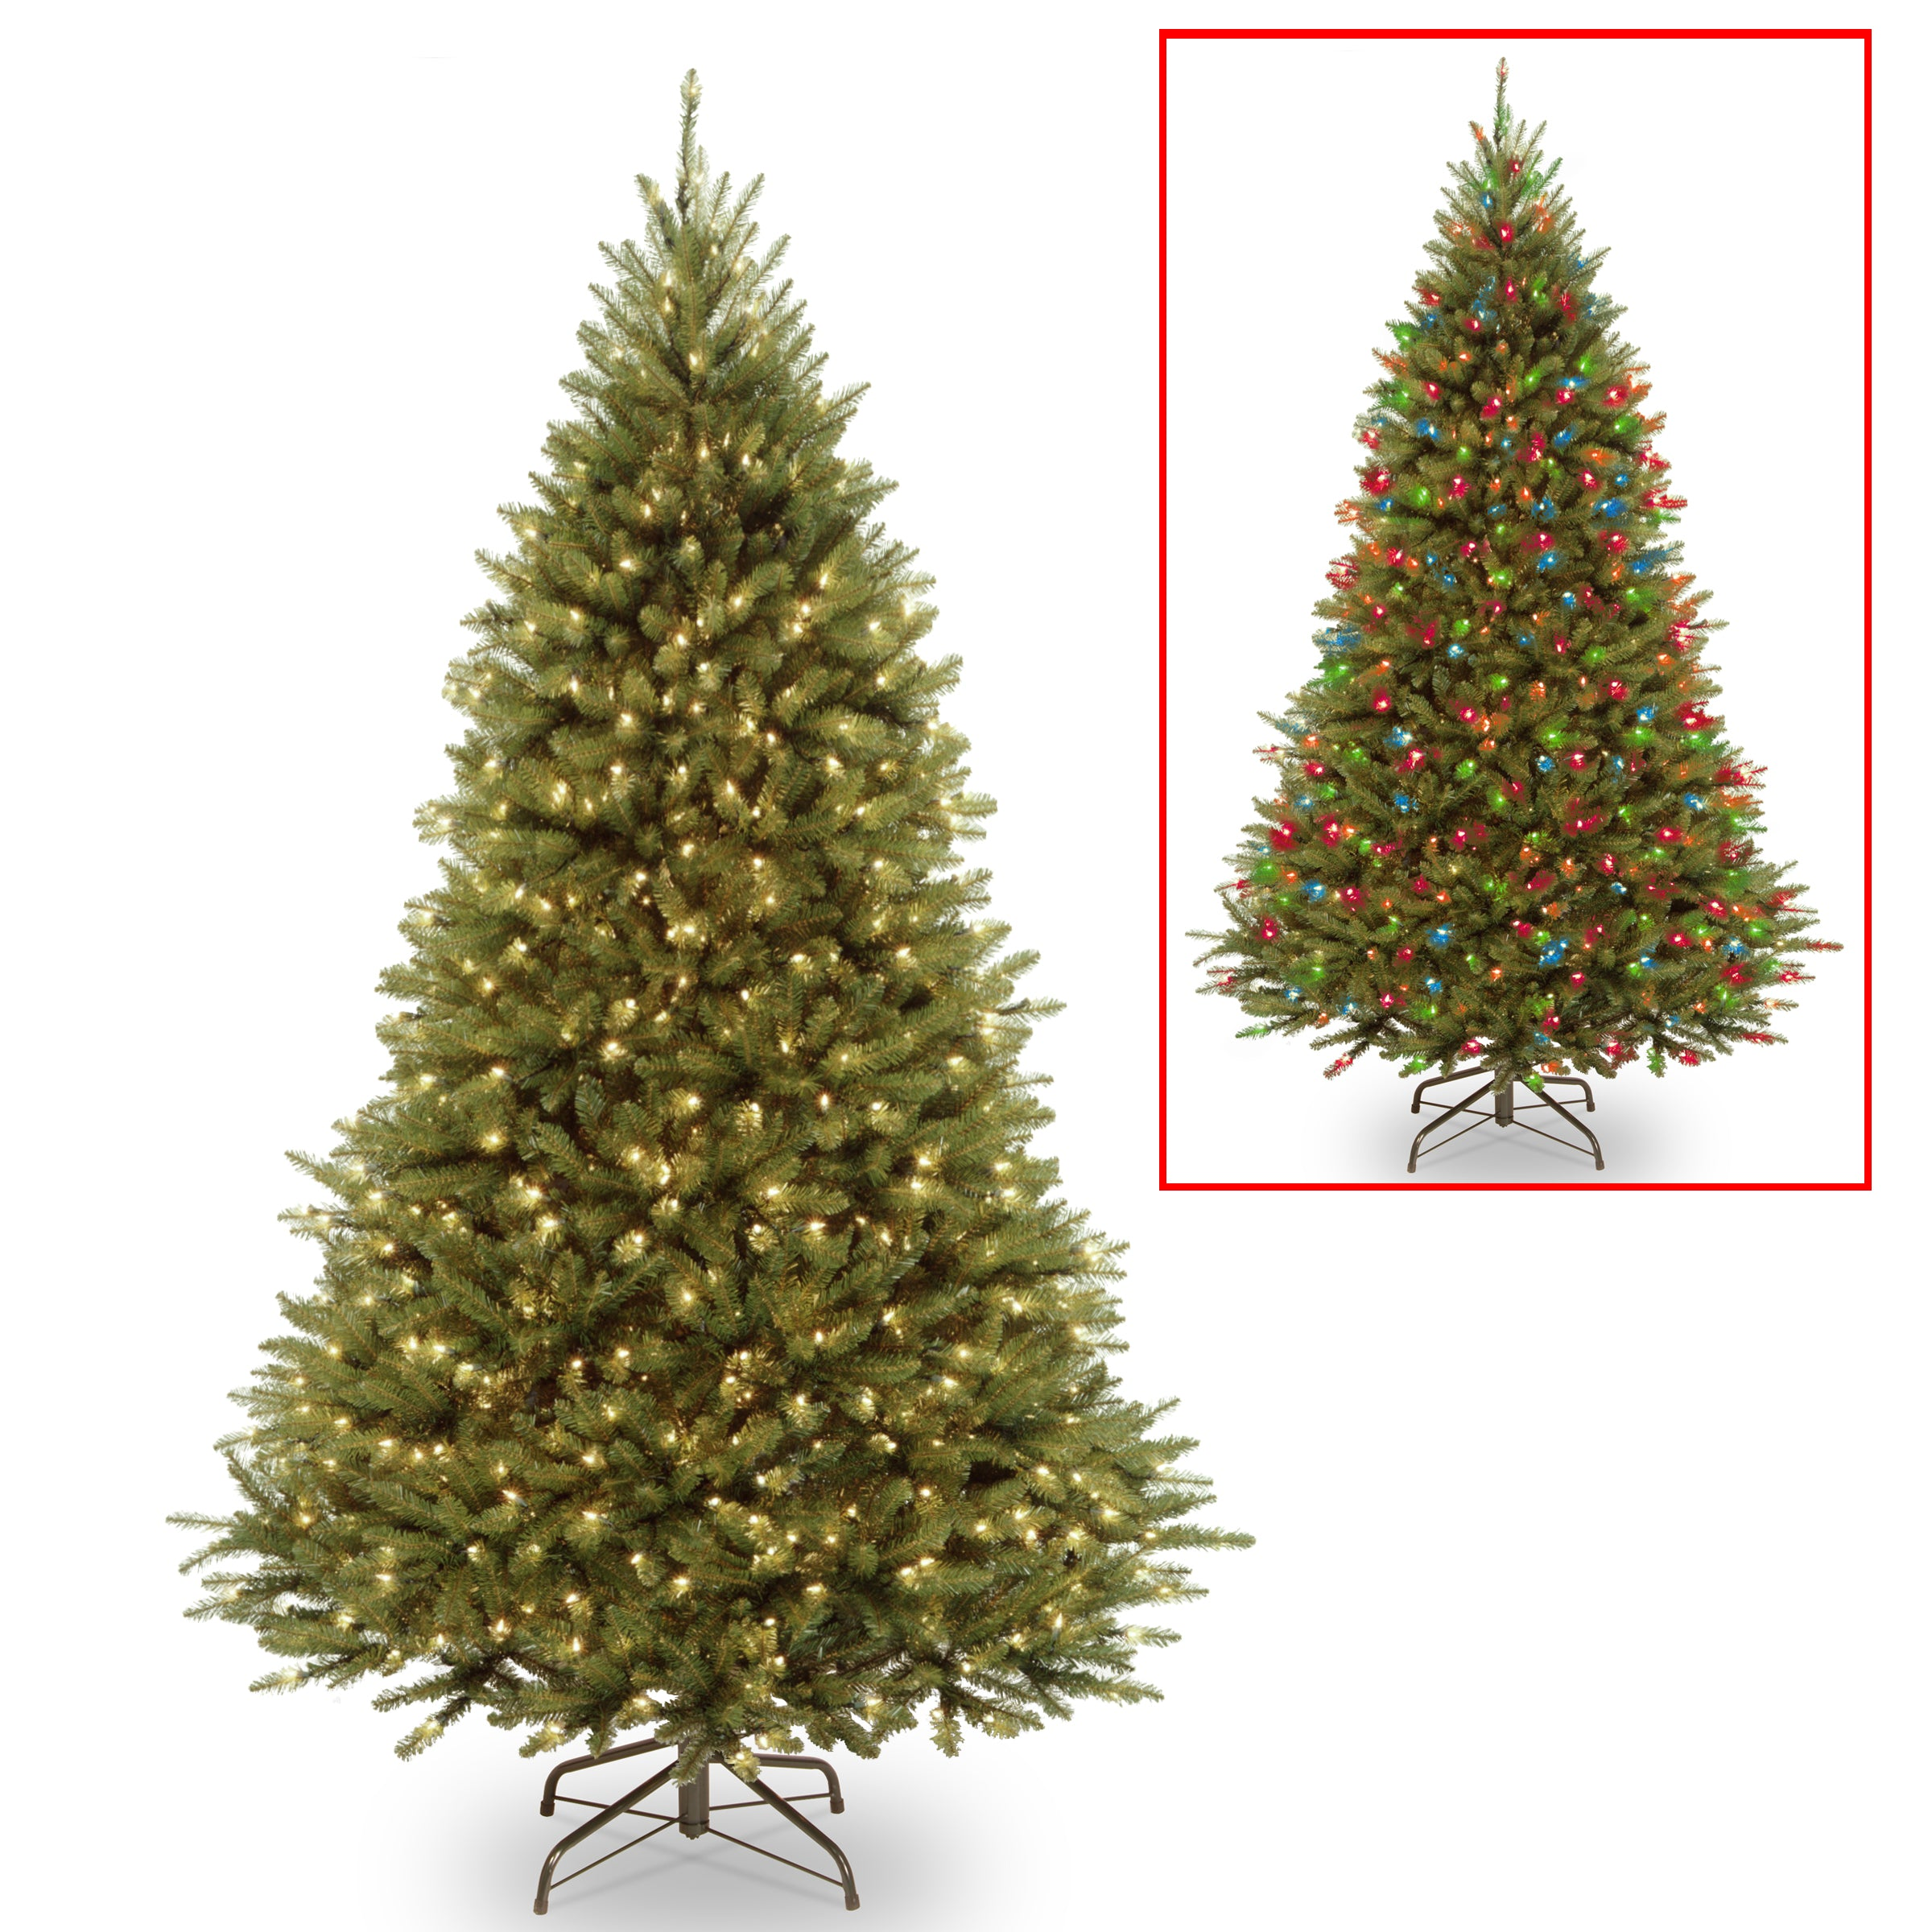 National Tree Kw7-d53-75 7 1/2' Kingswood Fir Medium Hing...